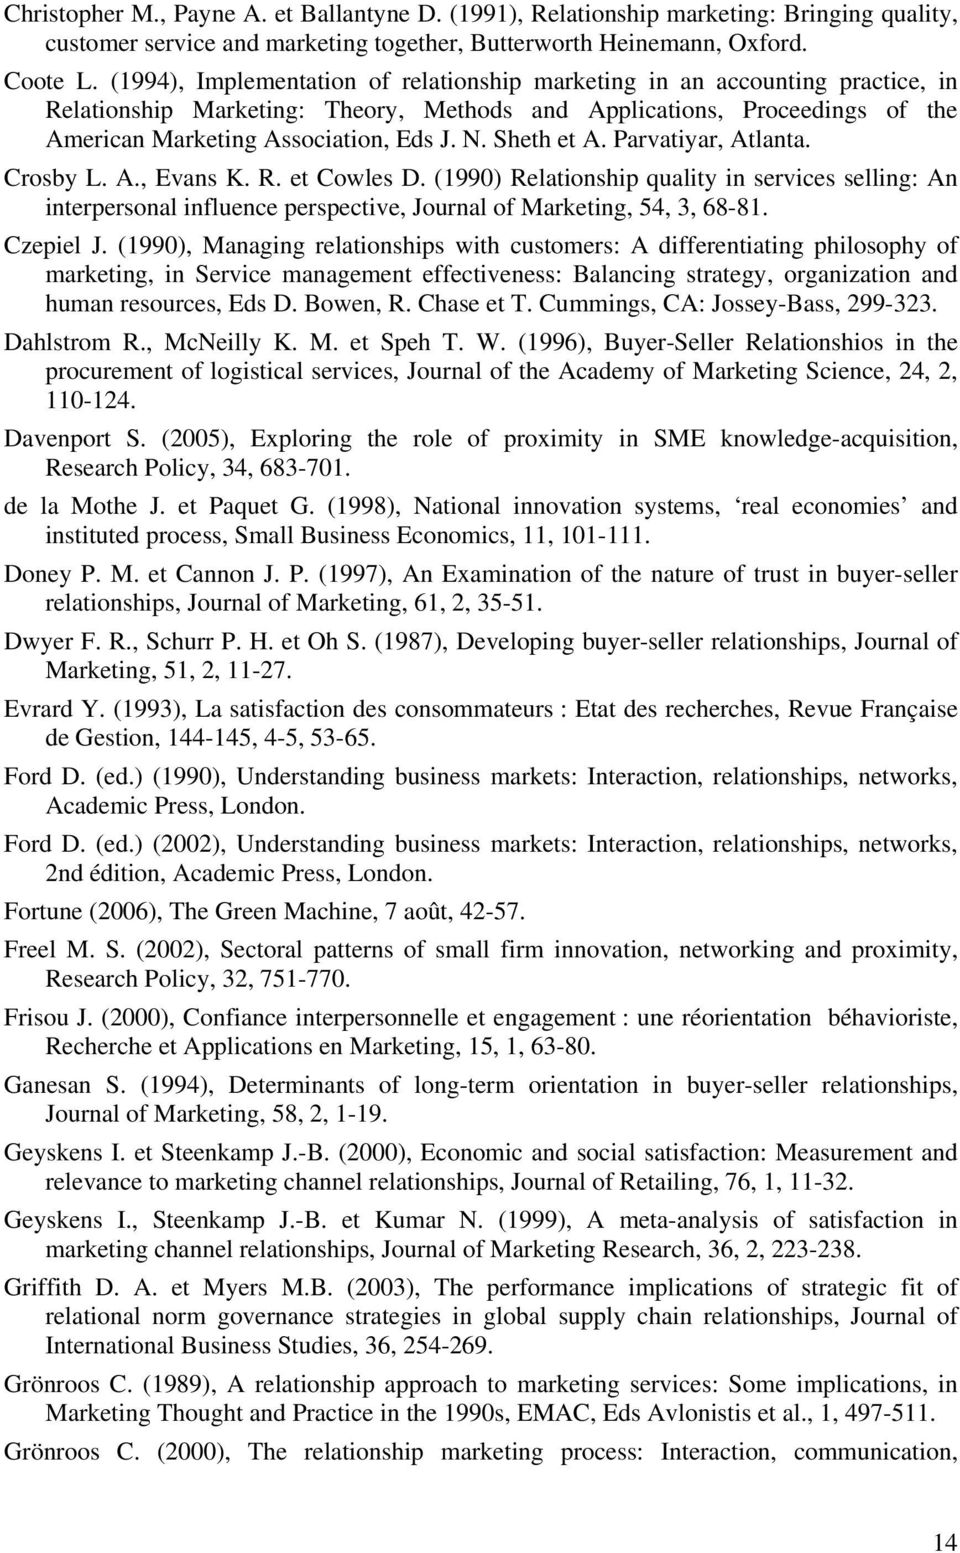 Sheth et A. Parvatiyar, Atlanta. Crosby L. A., Evans K. R. et Cowles D. (1990) Relationship quality in services selling: An interpersonal influence perspective, Journal of Marketing, 54, 3, 68-81.